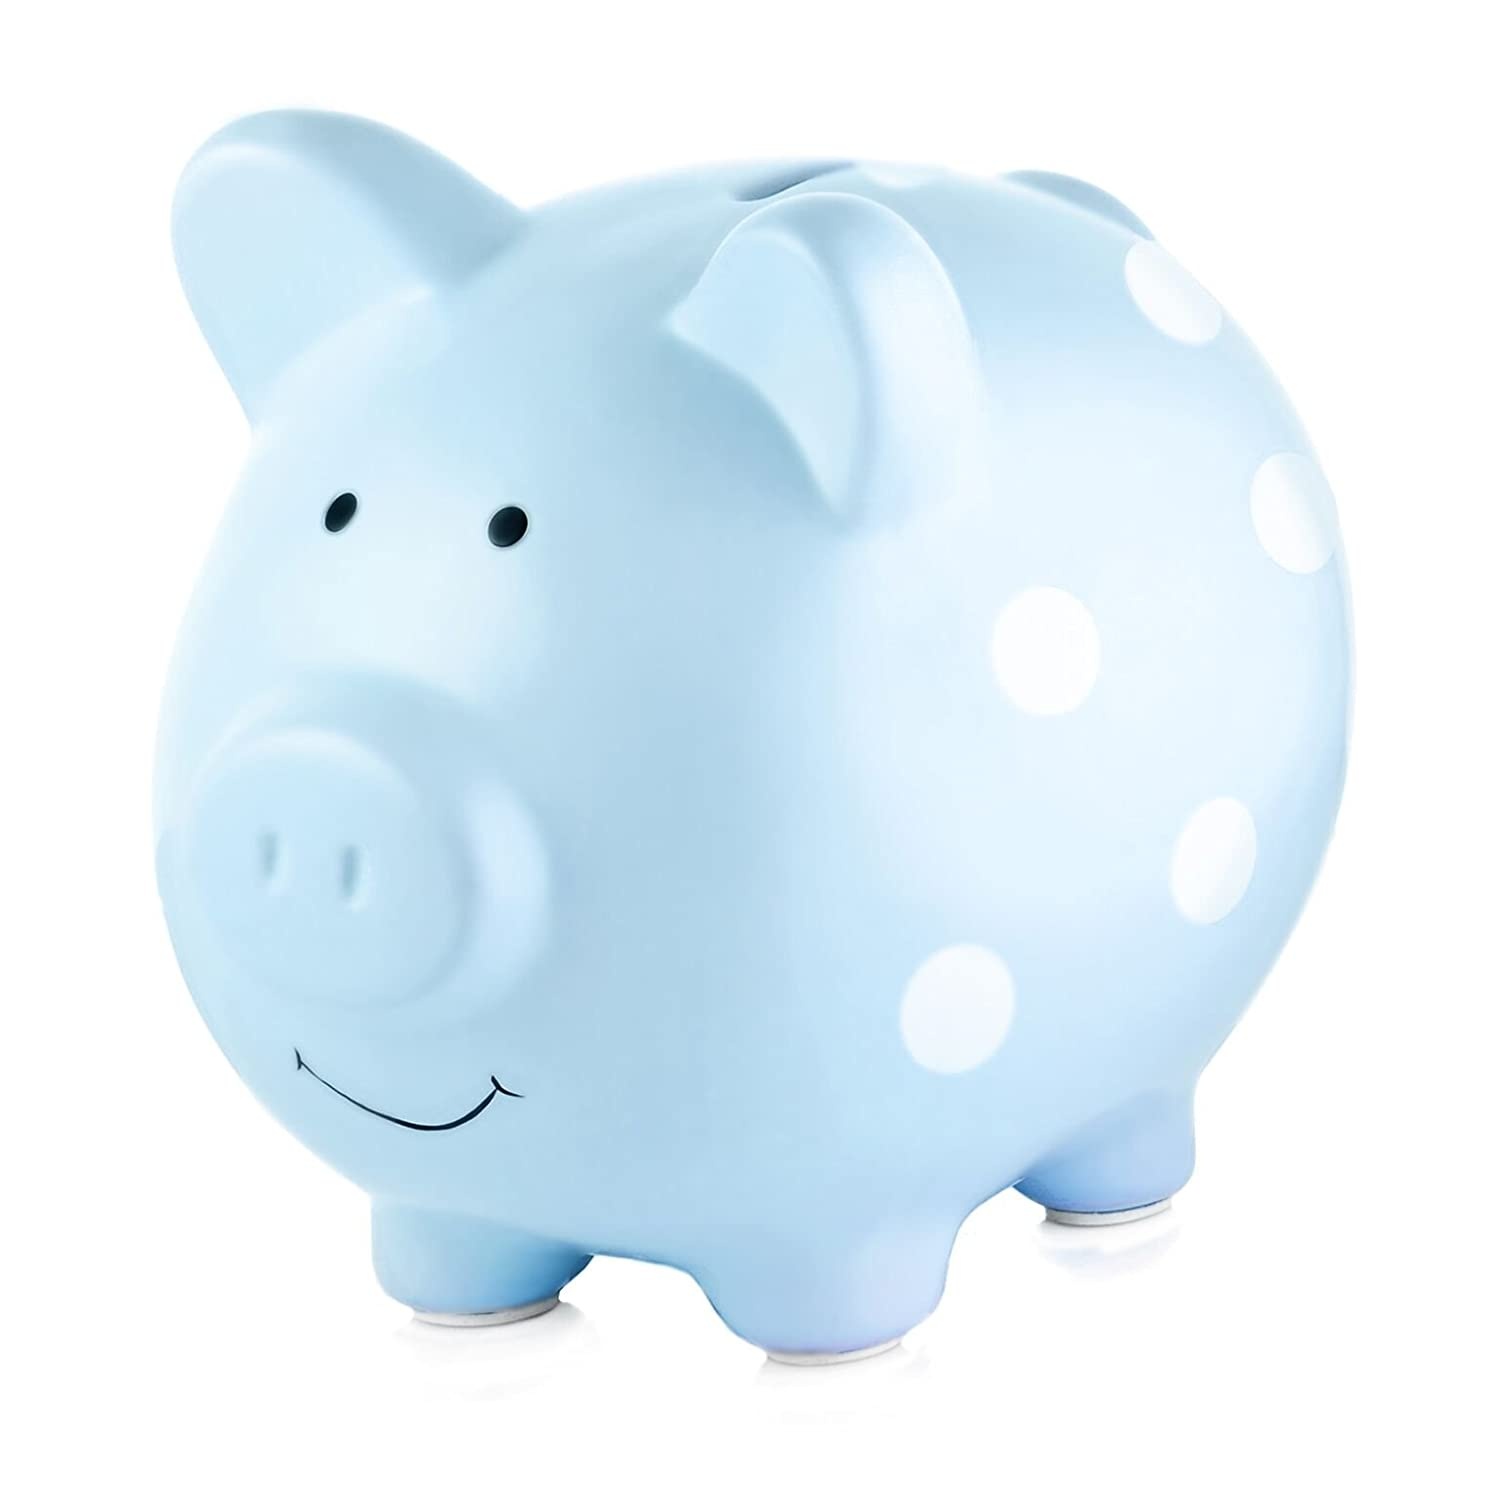 Pearhead Ceramic Piggy Bank, Makes a Perfect and Unique Gift For New Moms or New Baby, White With Multi Colored Polka Dots 40103